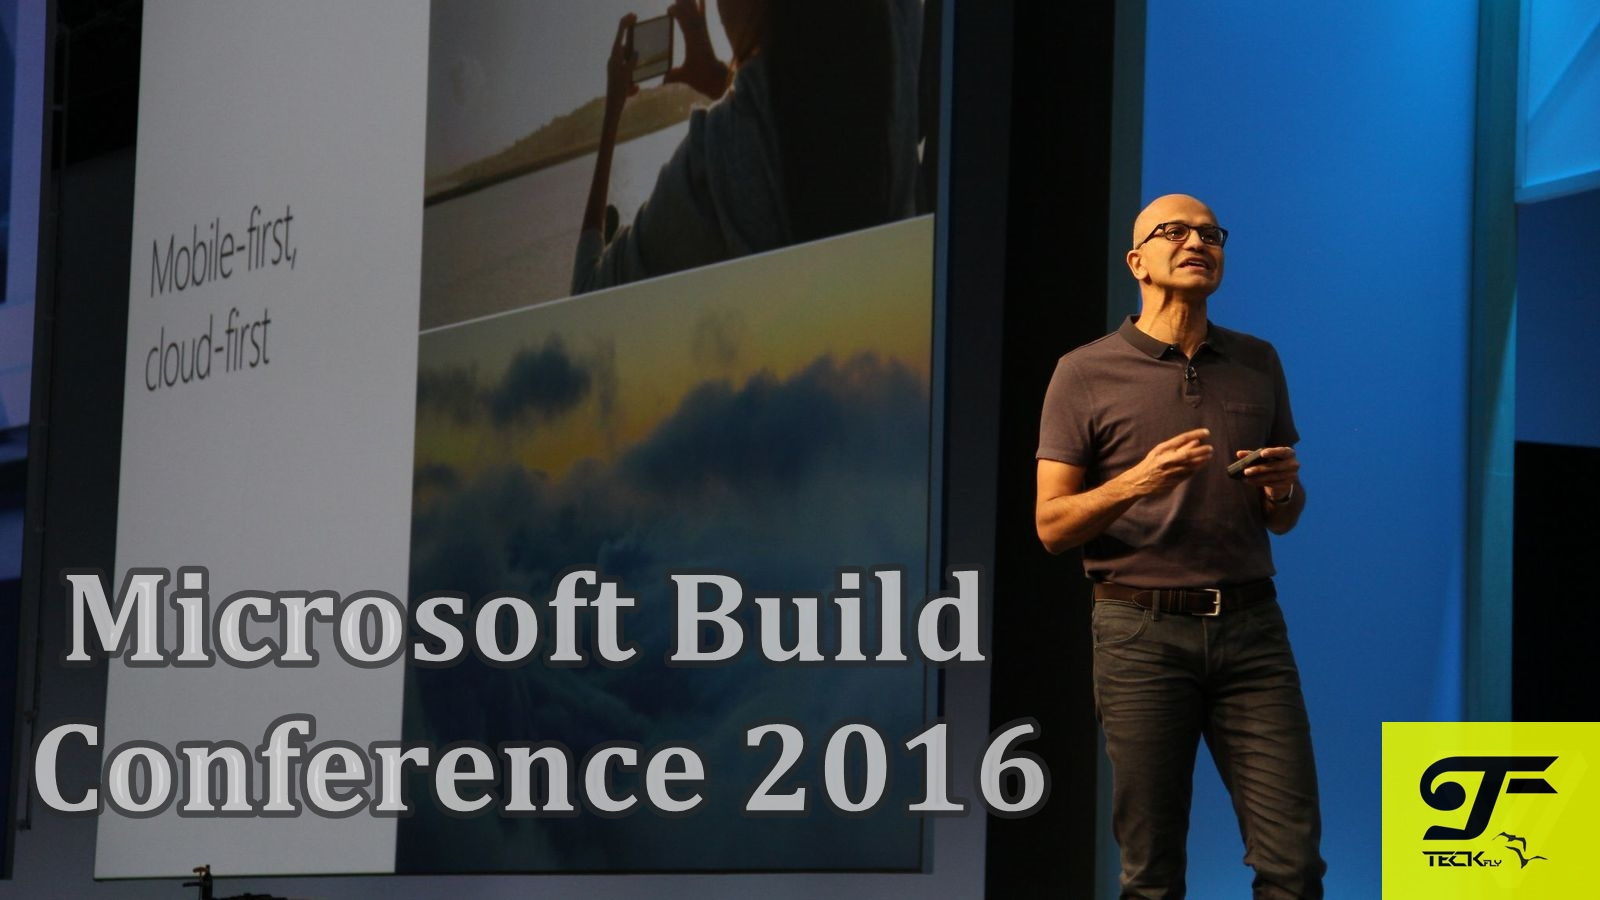 Microsoft Build Conference 2016